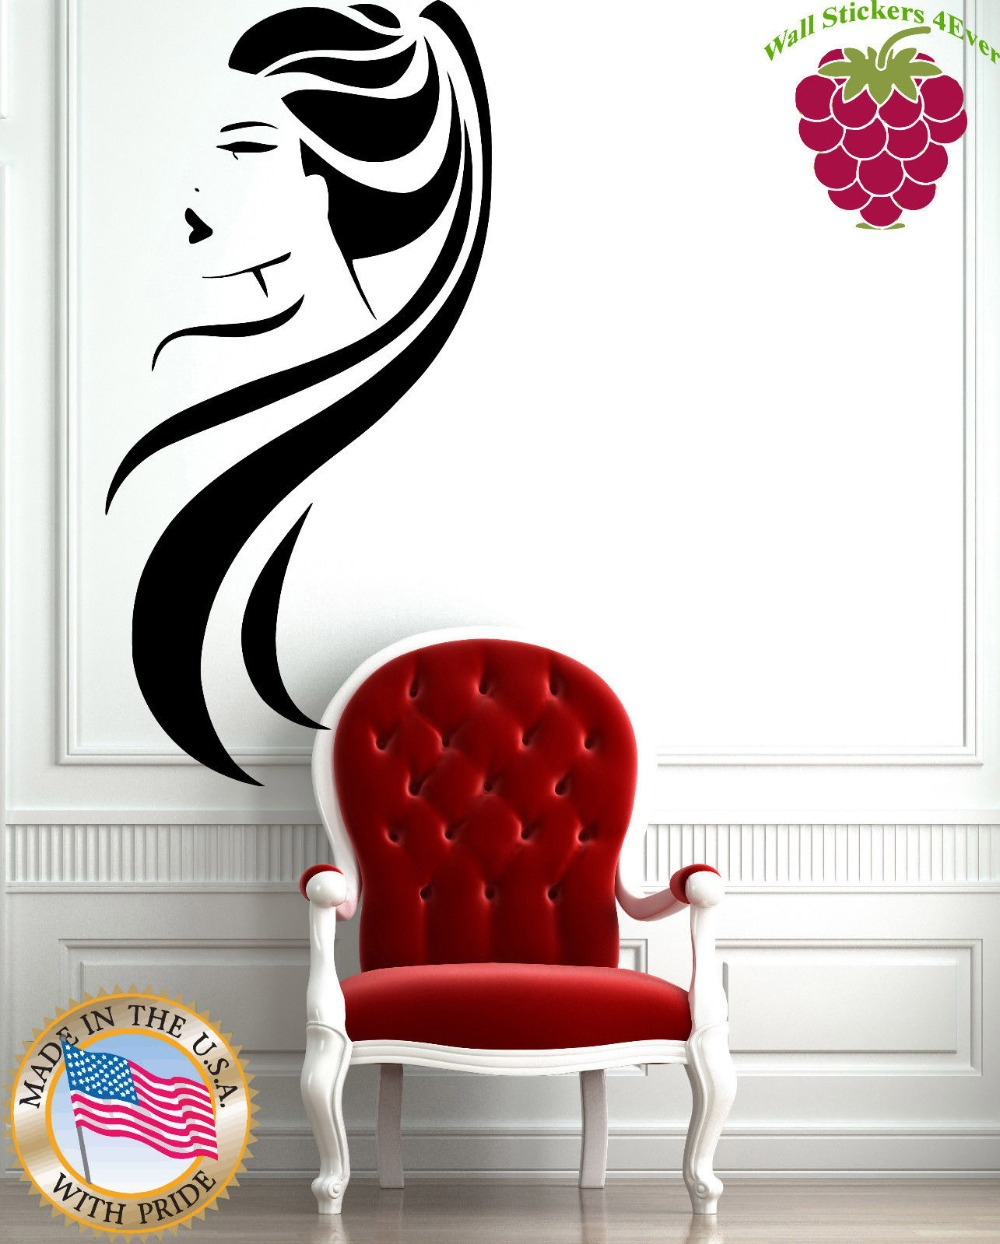 Eyes wall stickers wow modern beauty salon valentine wall decoration - Wall Stickers Vinyl Decal Beauty Salon Long Hair Ponytail Hot Sexy Girl China